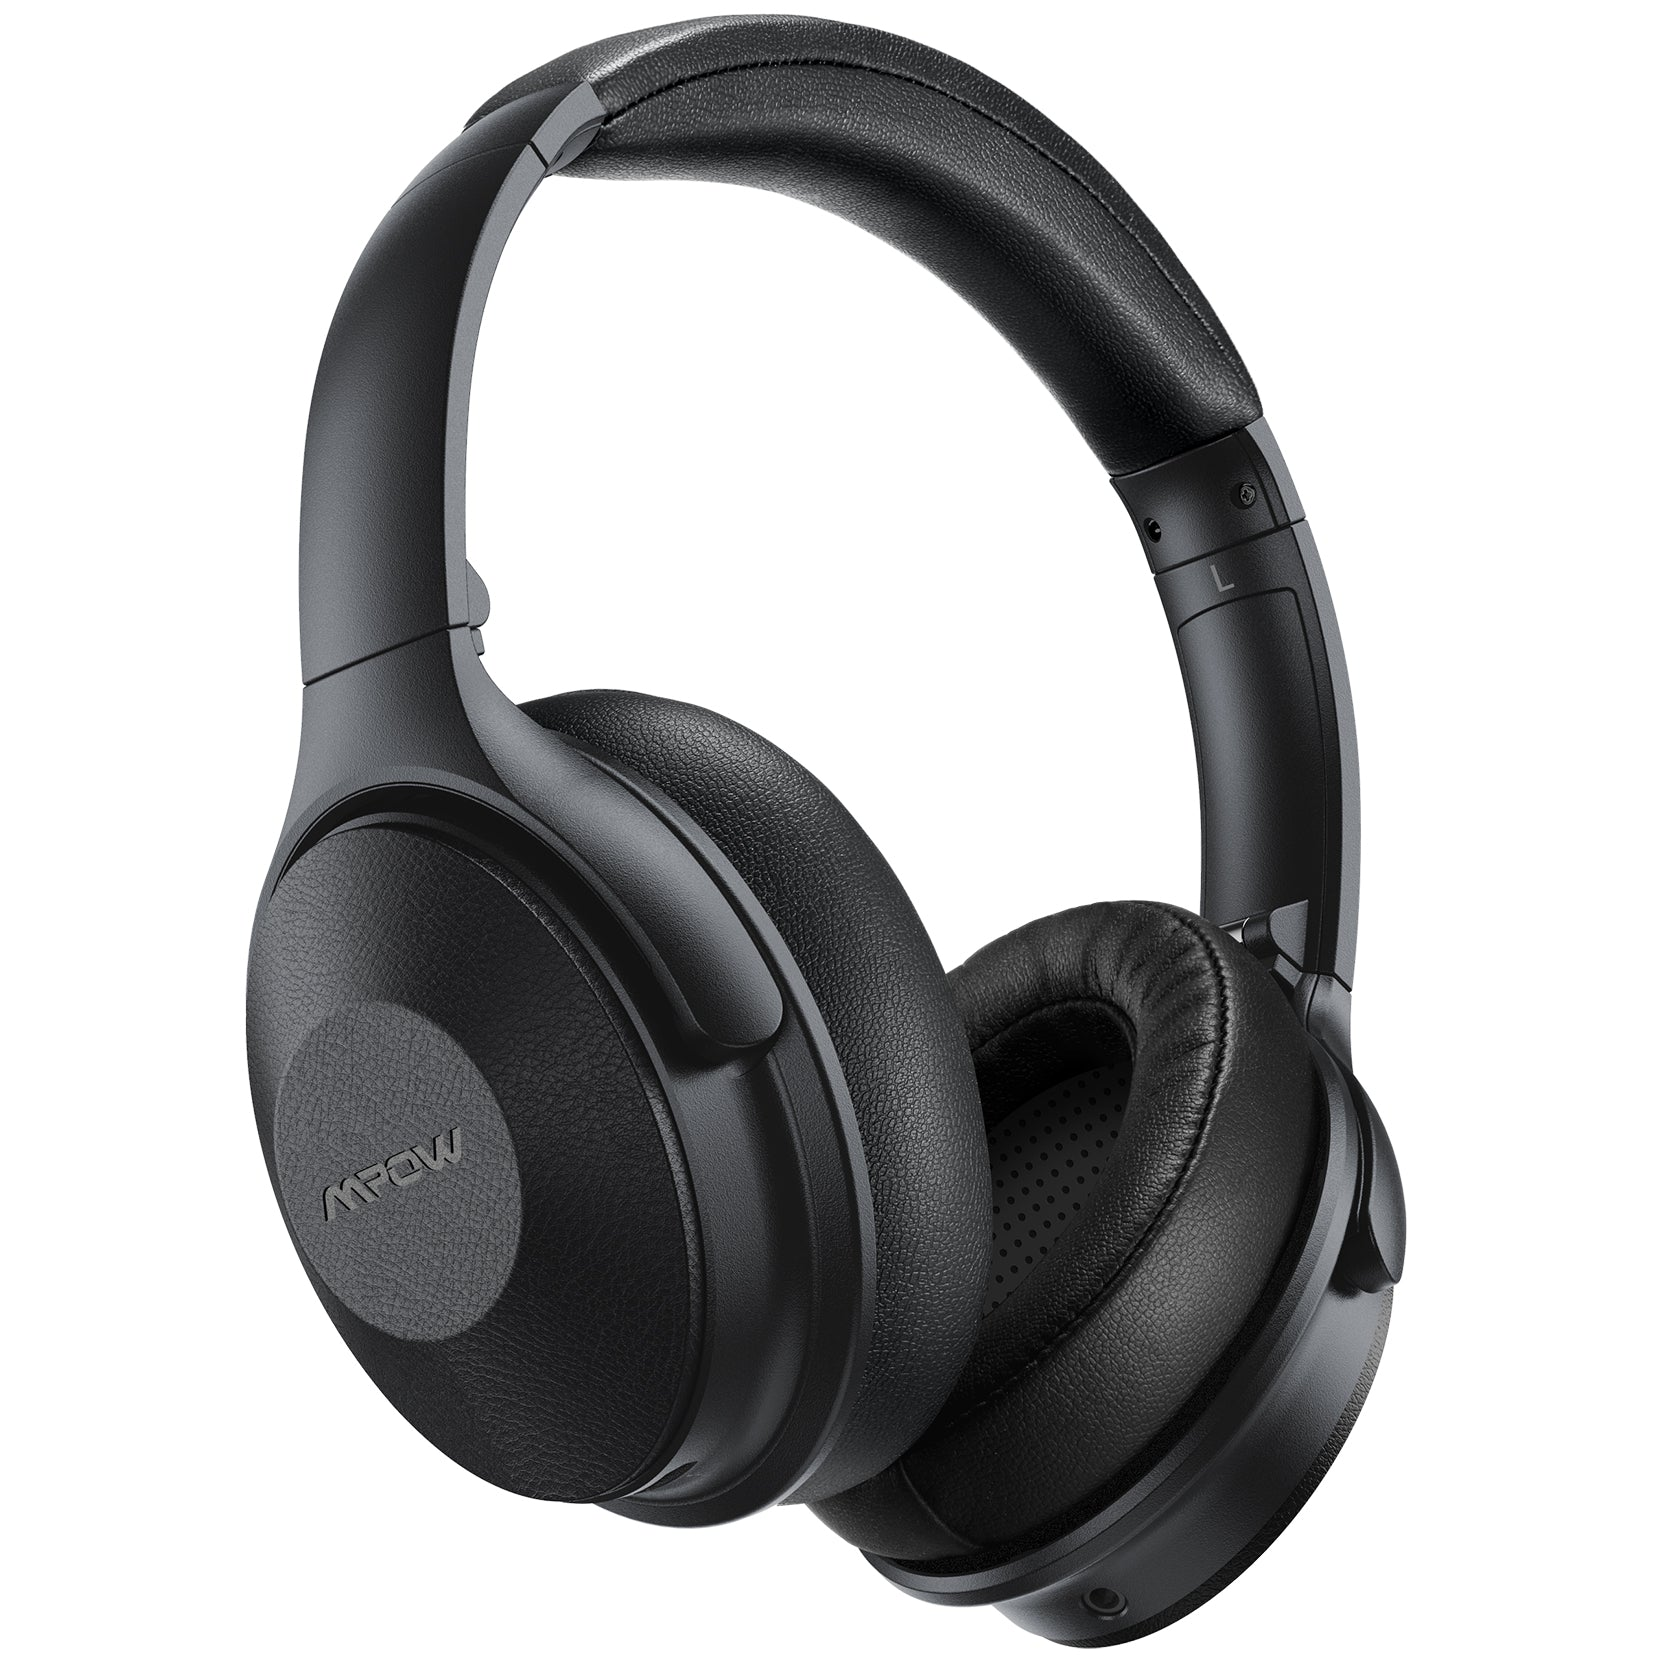 Mpow 45Hrs Noise Cancelling Headphones Wireless